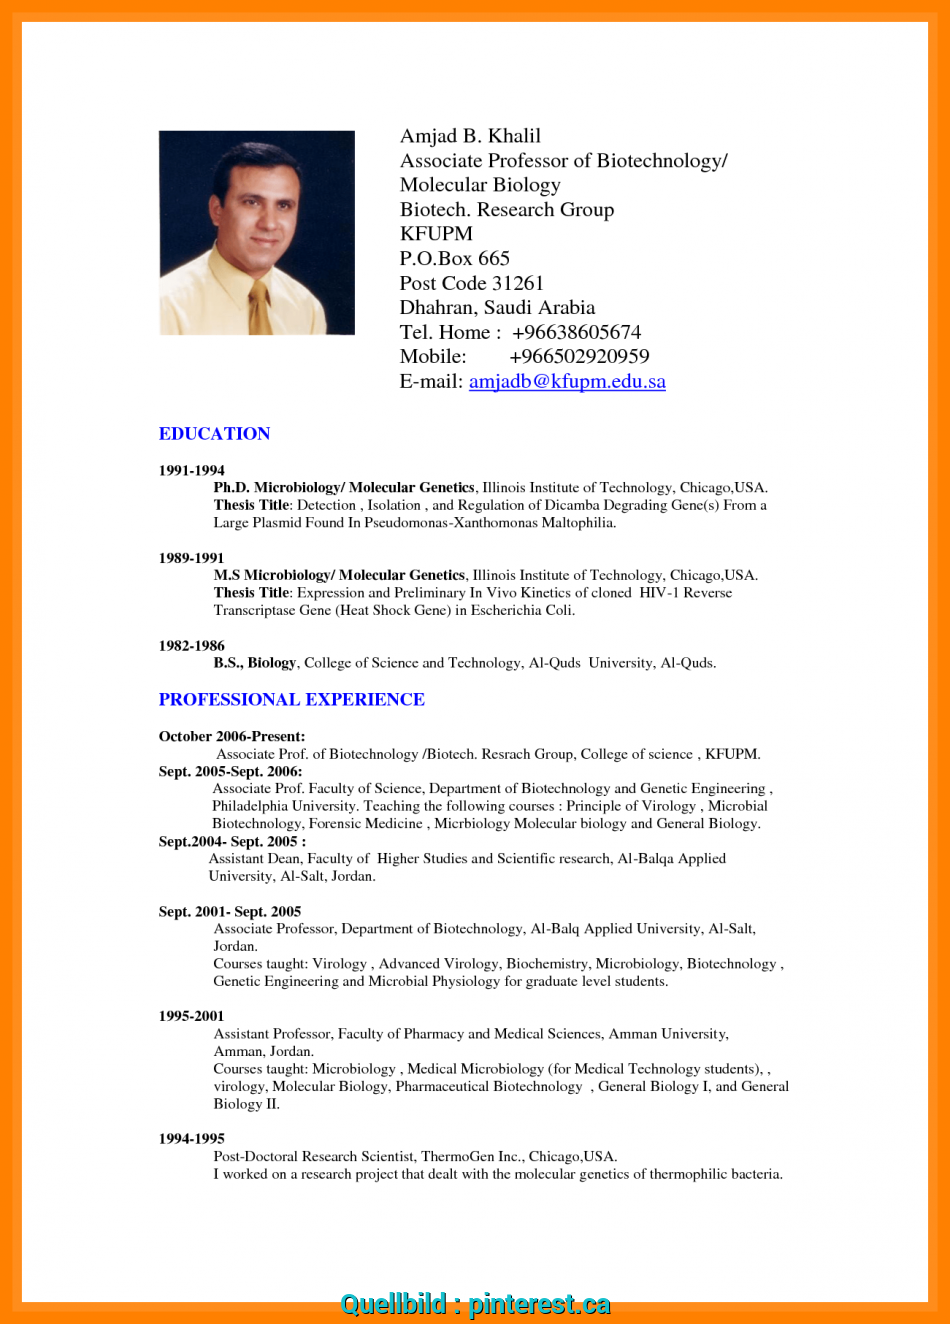 Gut Brilliant Ideas Of 9 Cv Sample, Charming Resume Format, File Download, Lebenslauf, Format